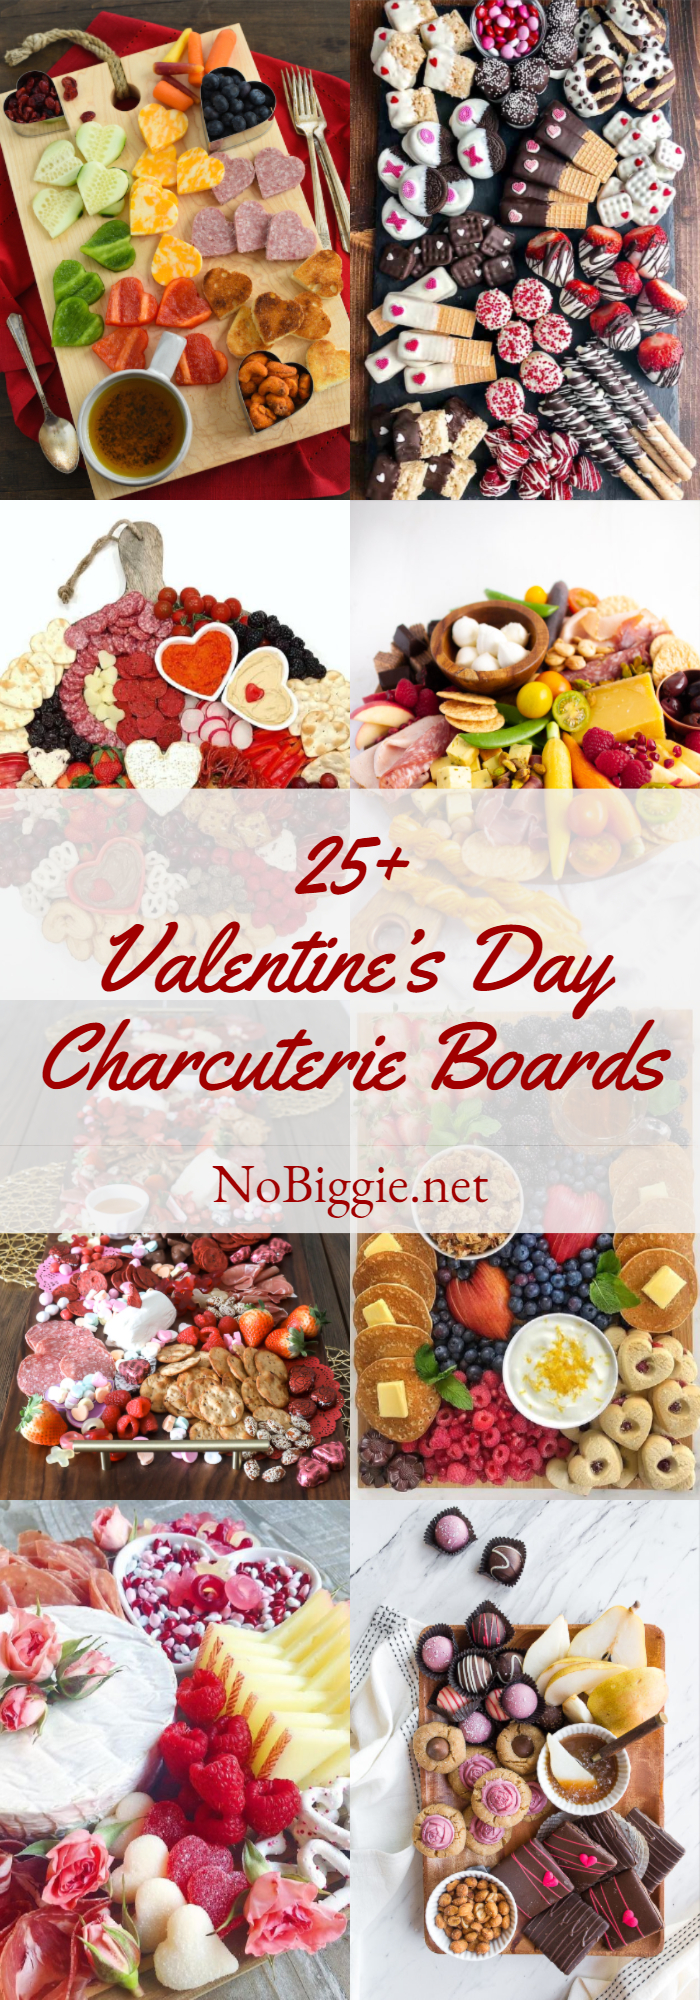 Valentine's Day Charcuterie Boards